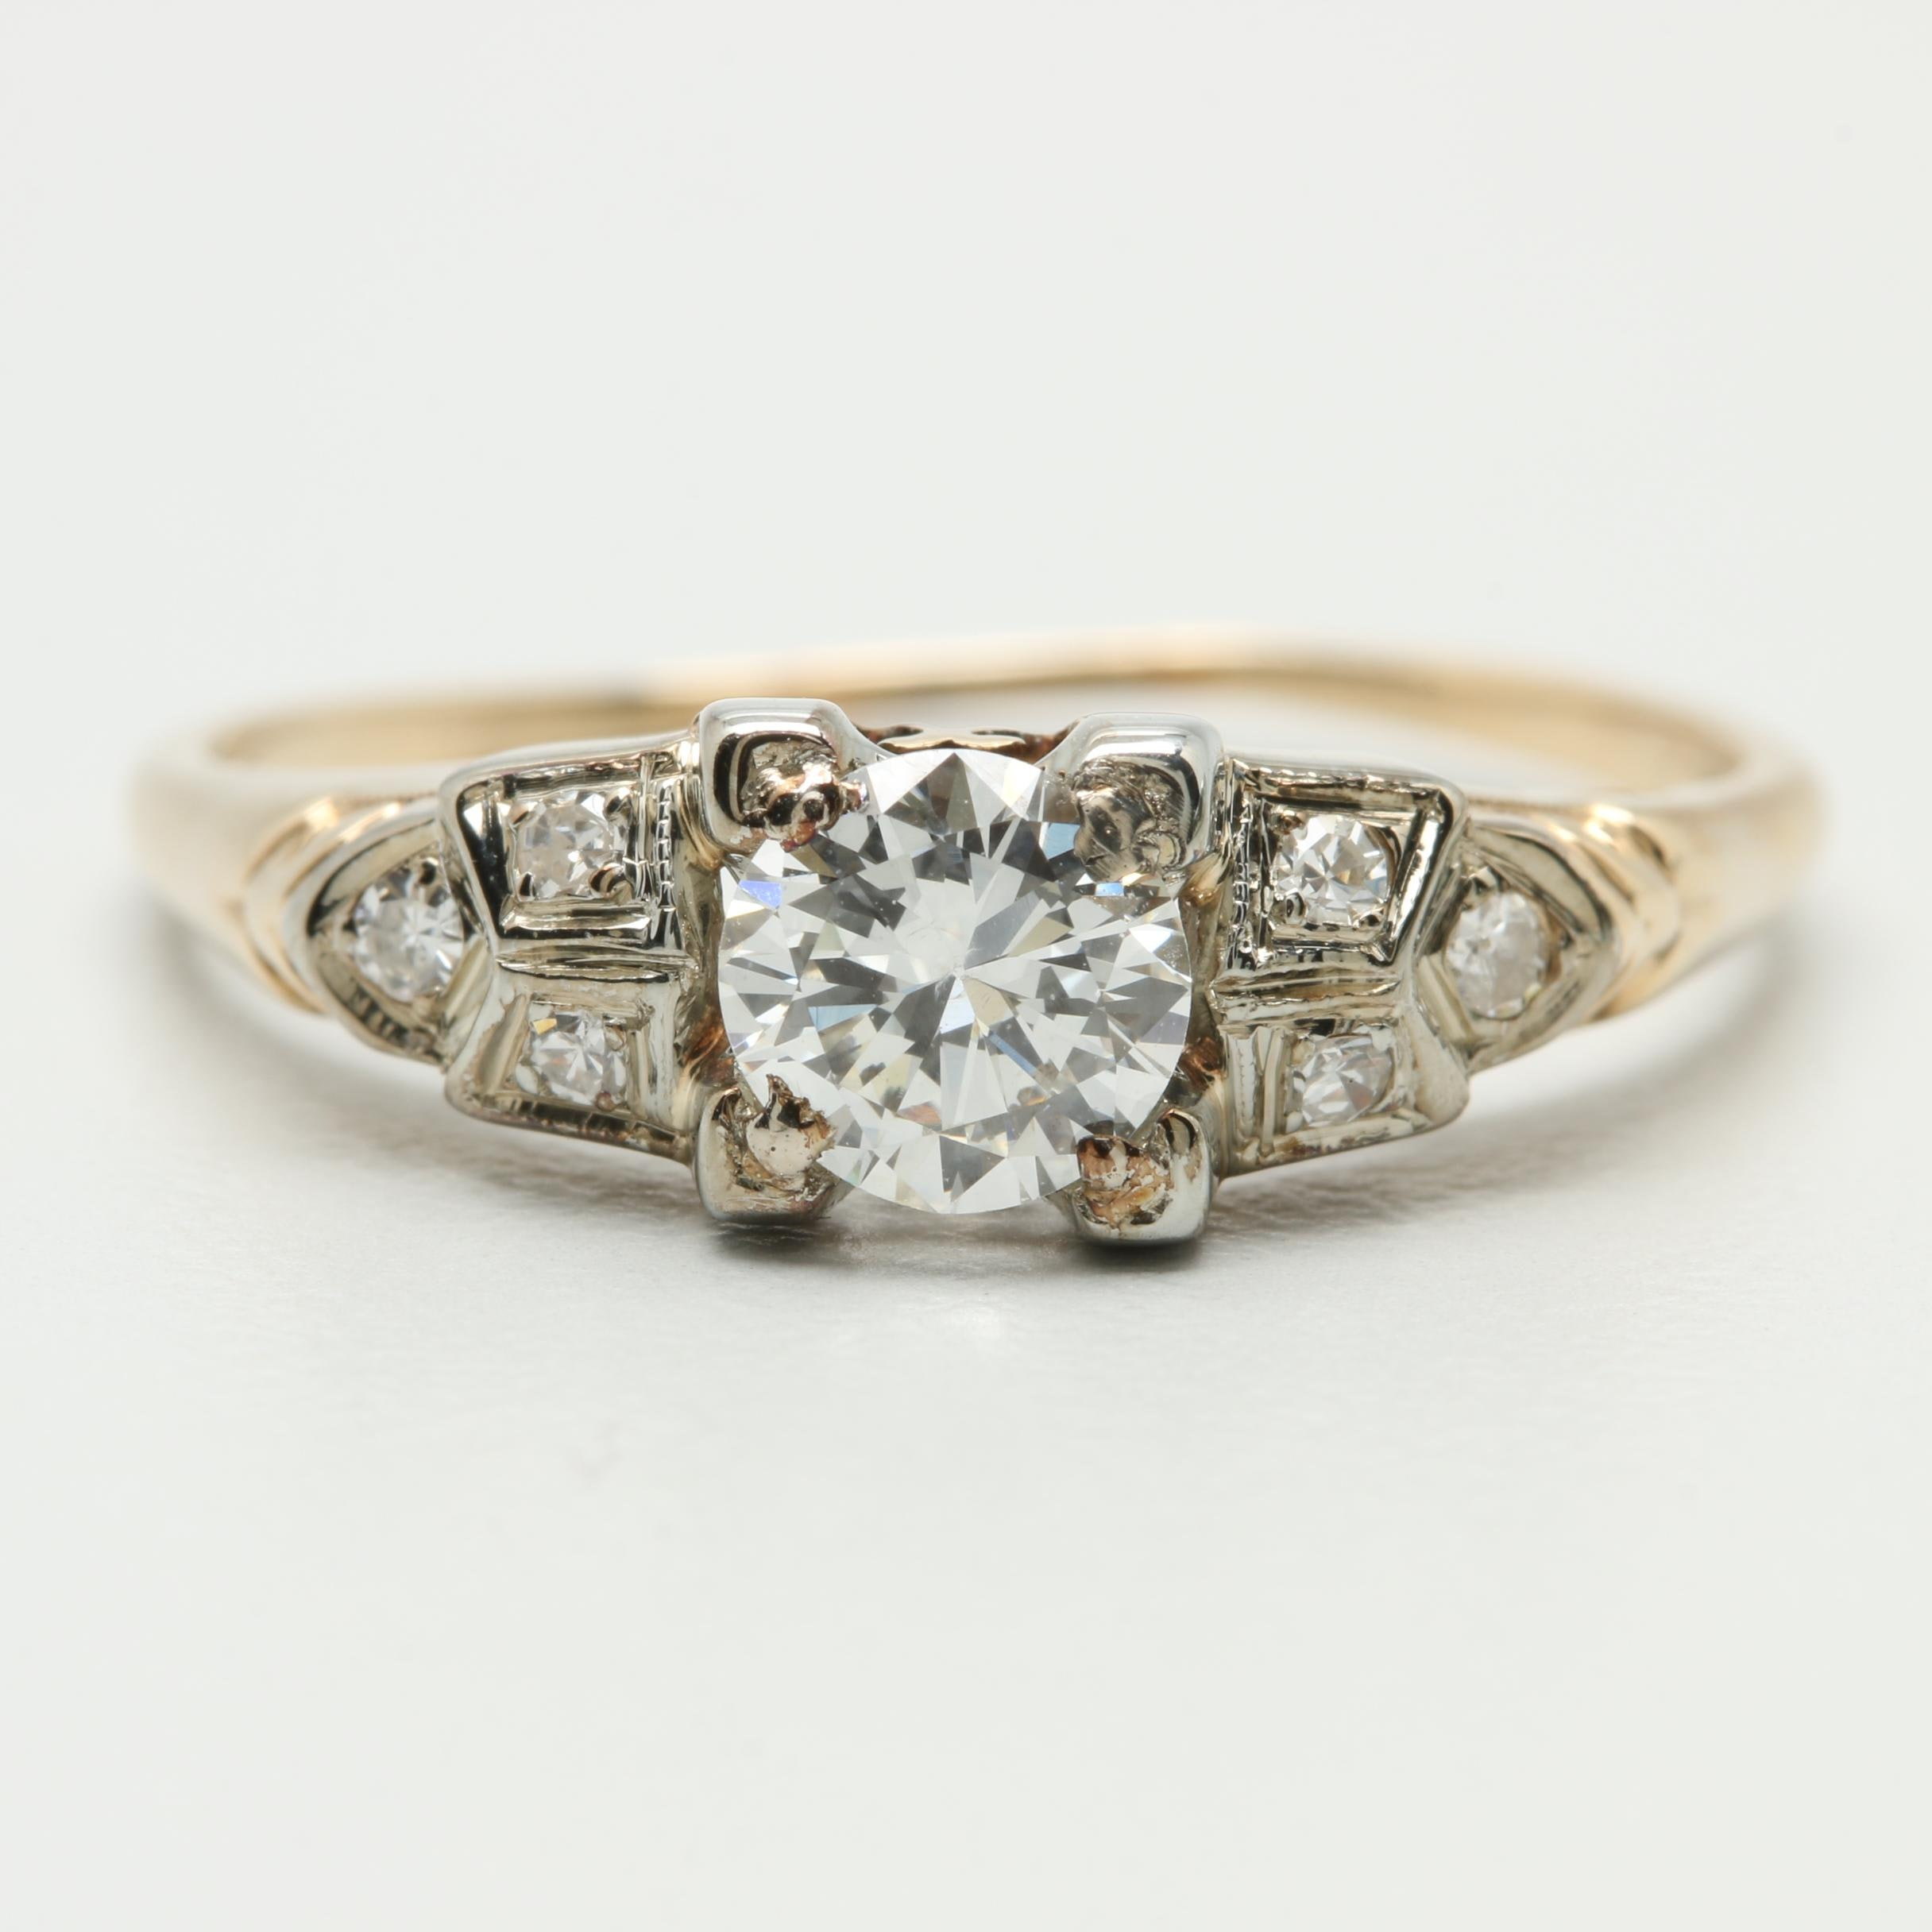 14K and 18K Yellow and White Gold Diamond Ring